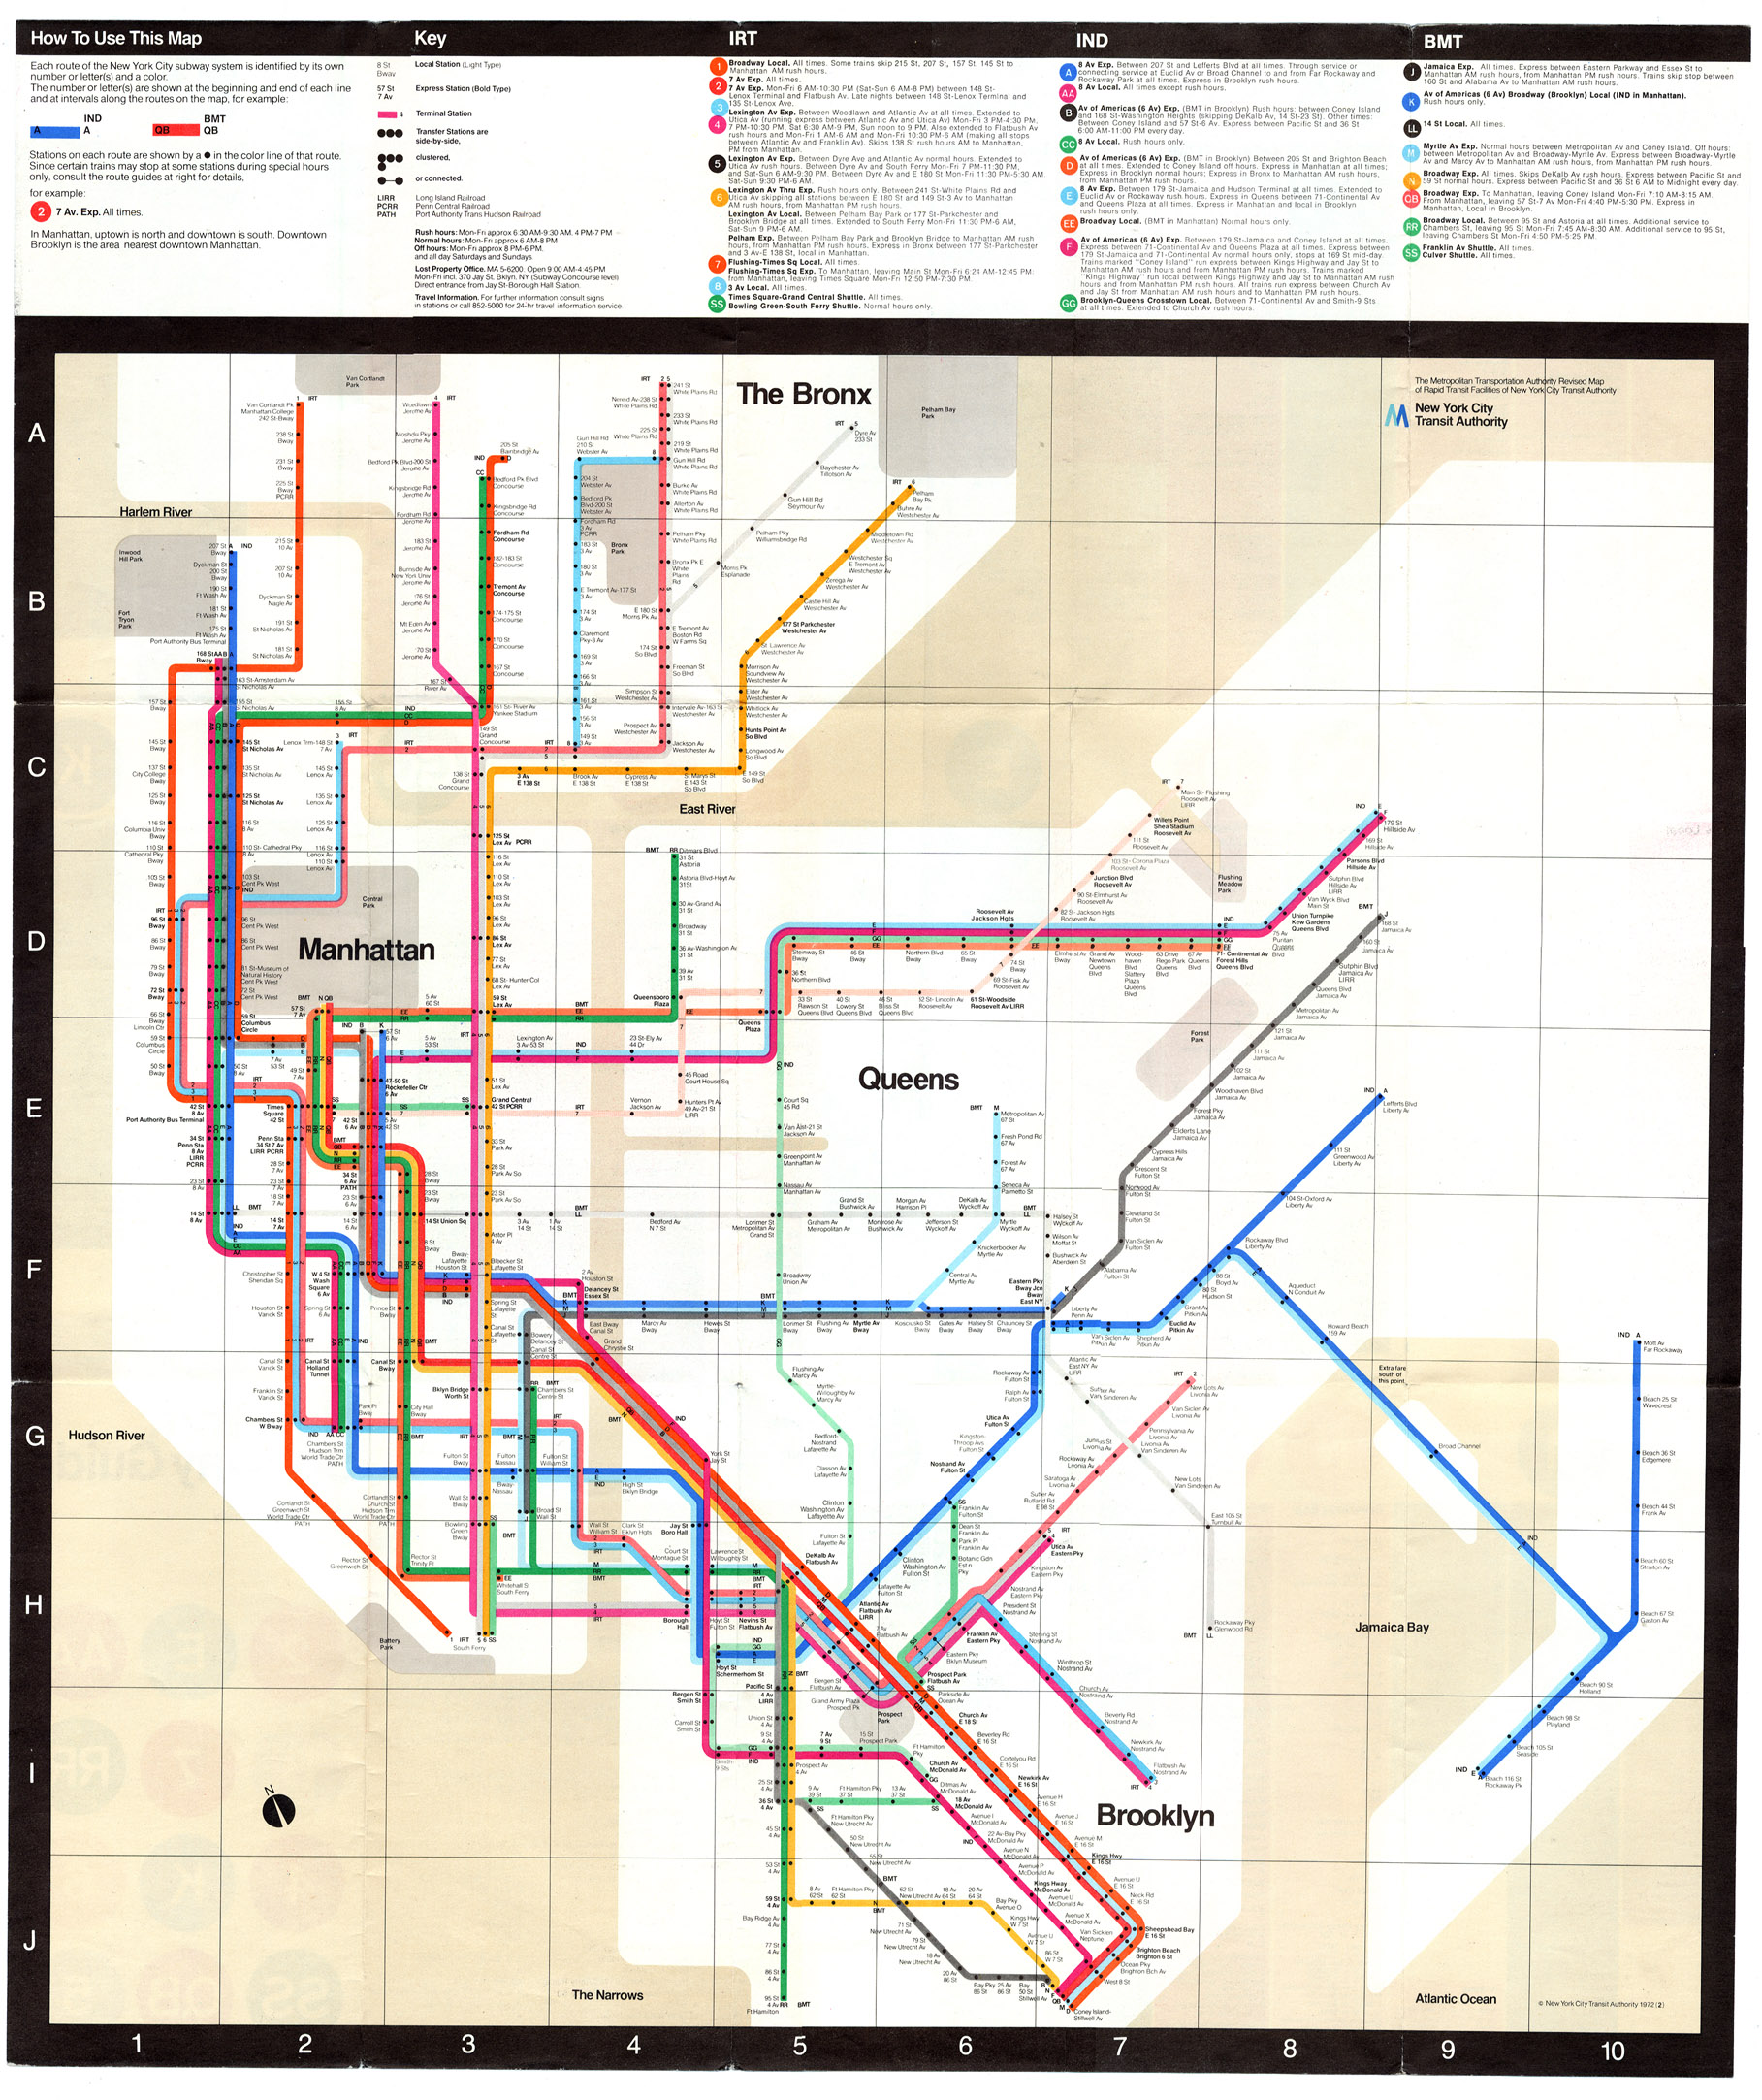 Ny Subway Map Google.The Great Subway Map War Of 1978 Revisited The Verge